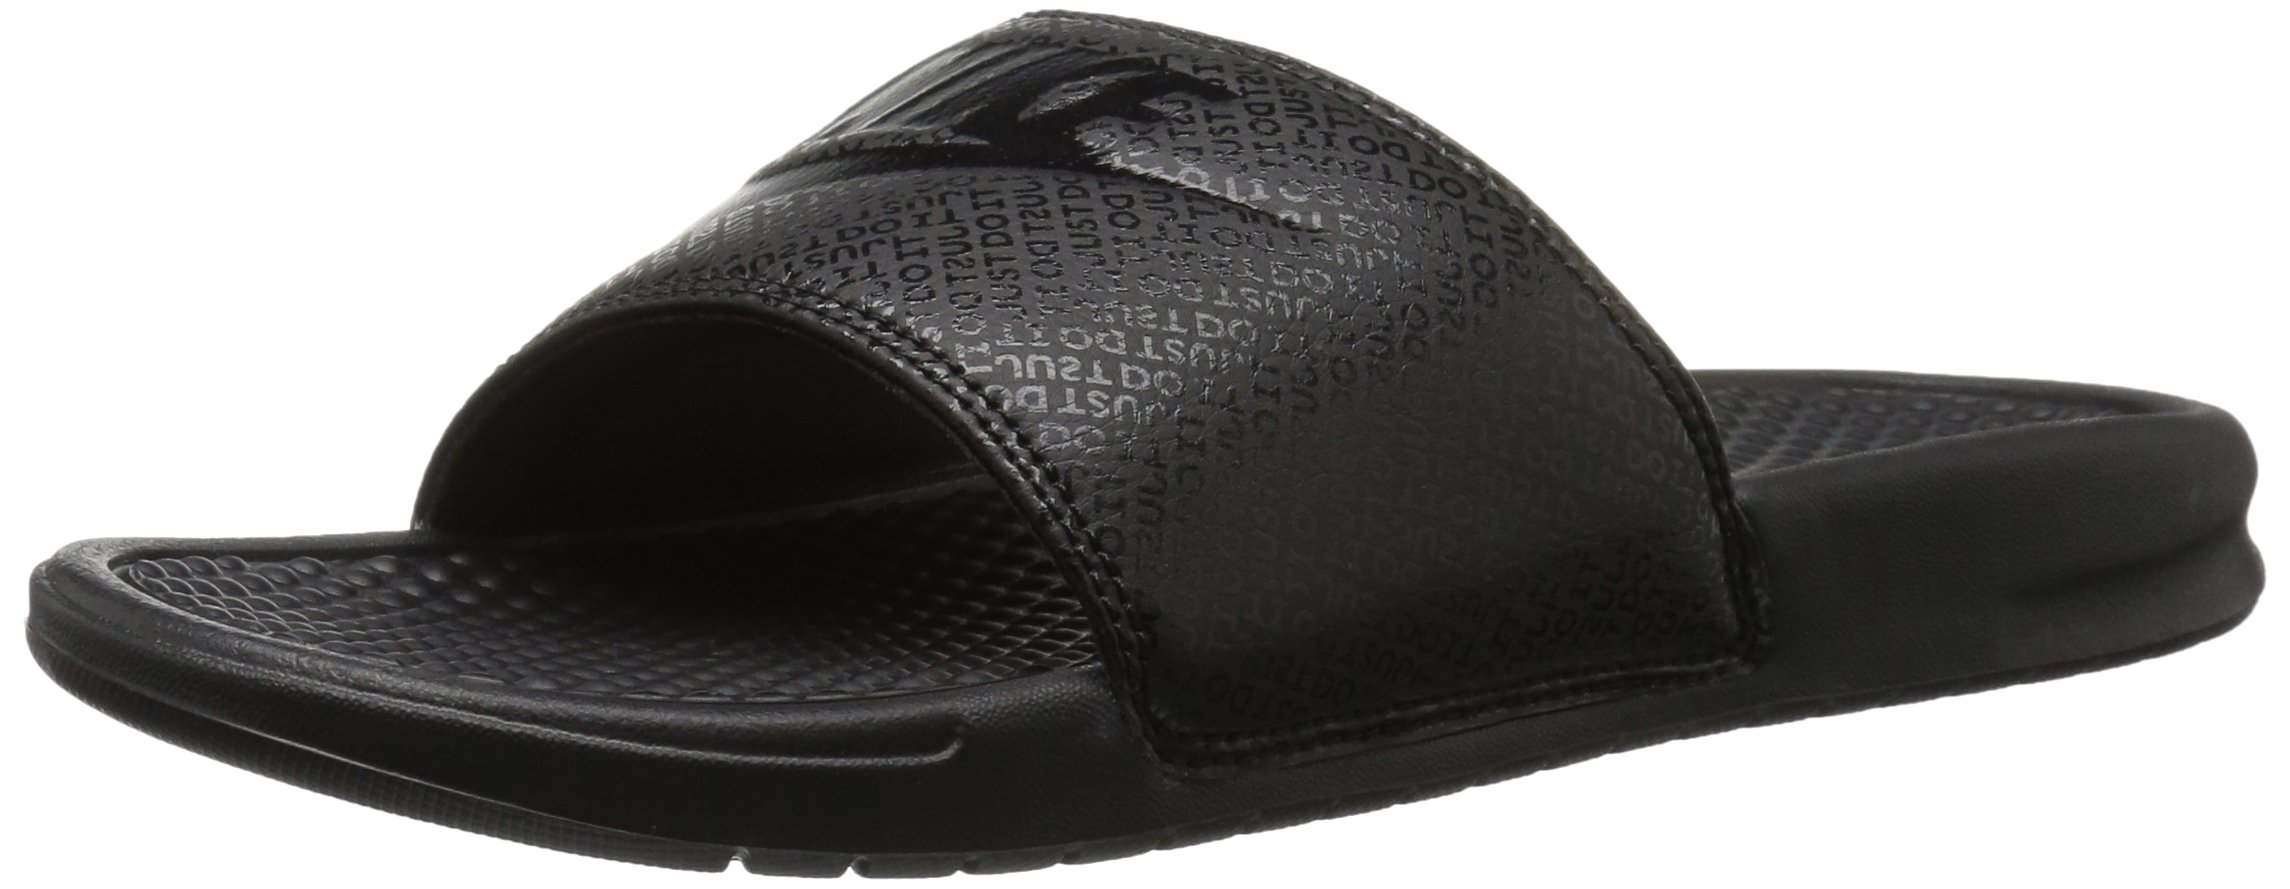 NIKE Men's Benassi Just Do It Slide Sandal, Black, 11 D(M) US by NIKE